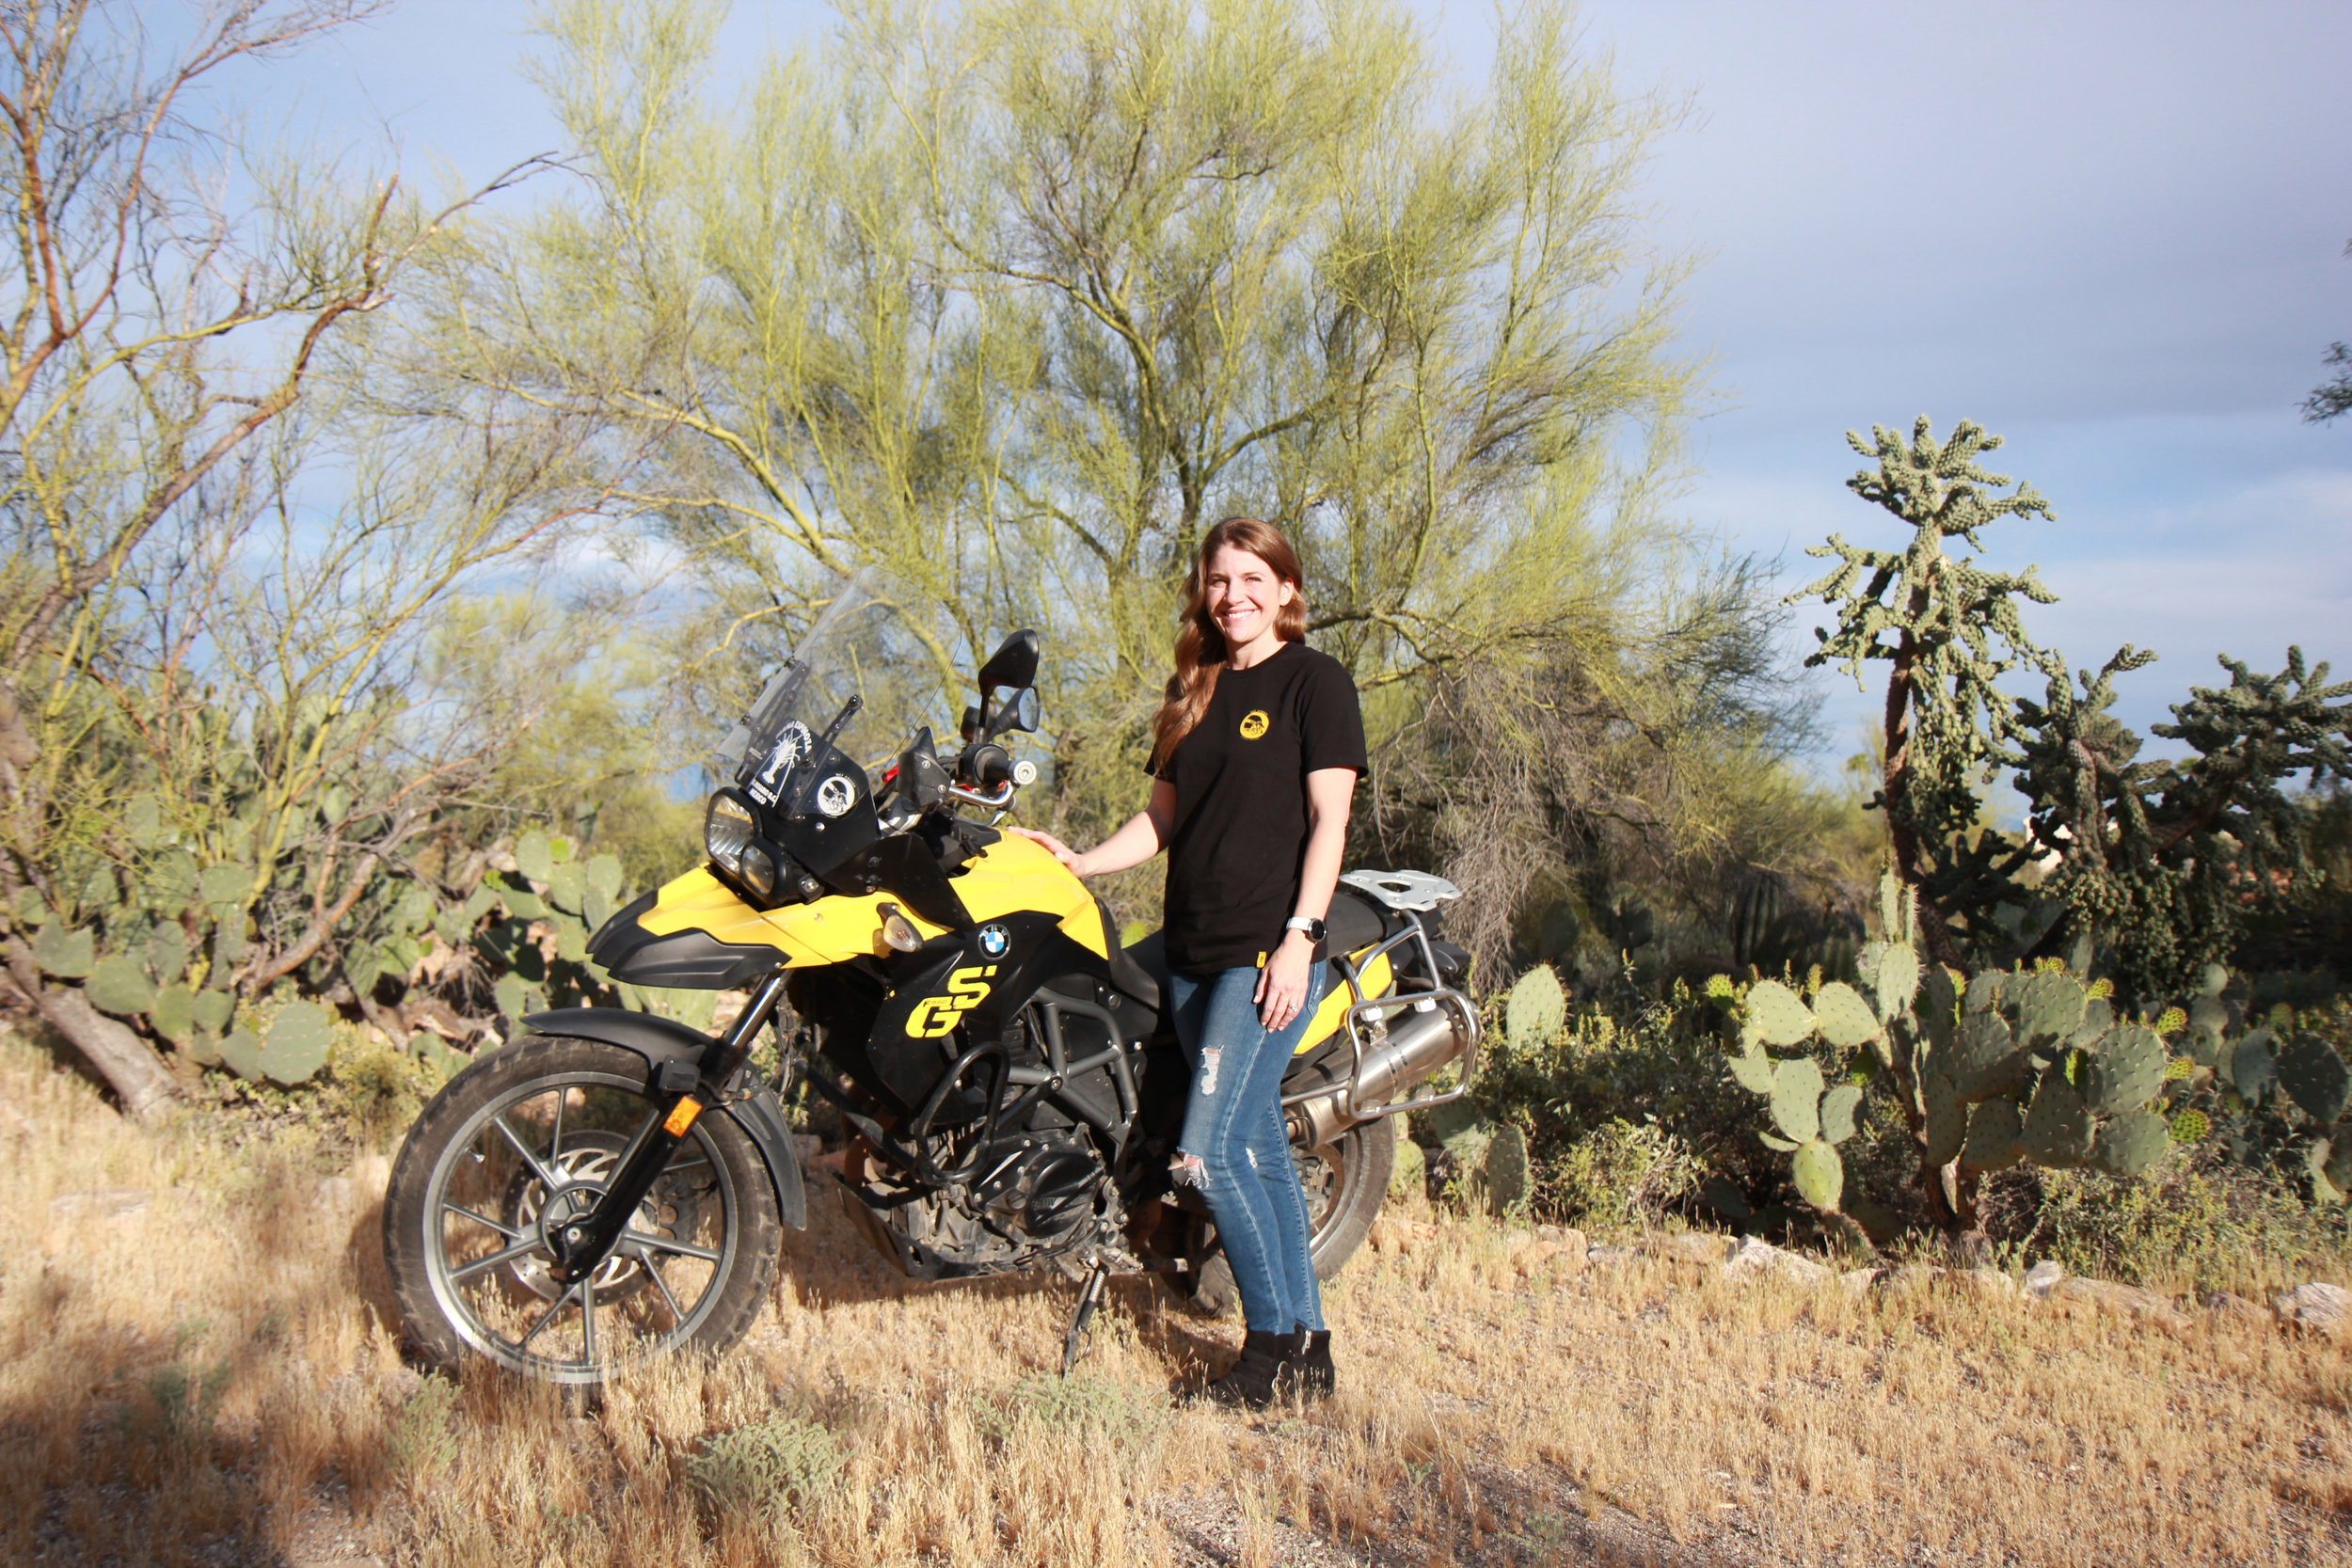 Photo Taken in Arizona with Betty my Bumblebee BMW f650 GS